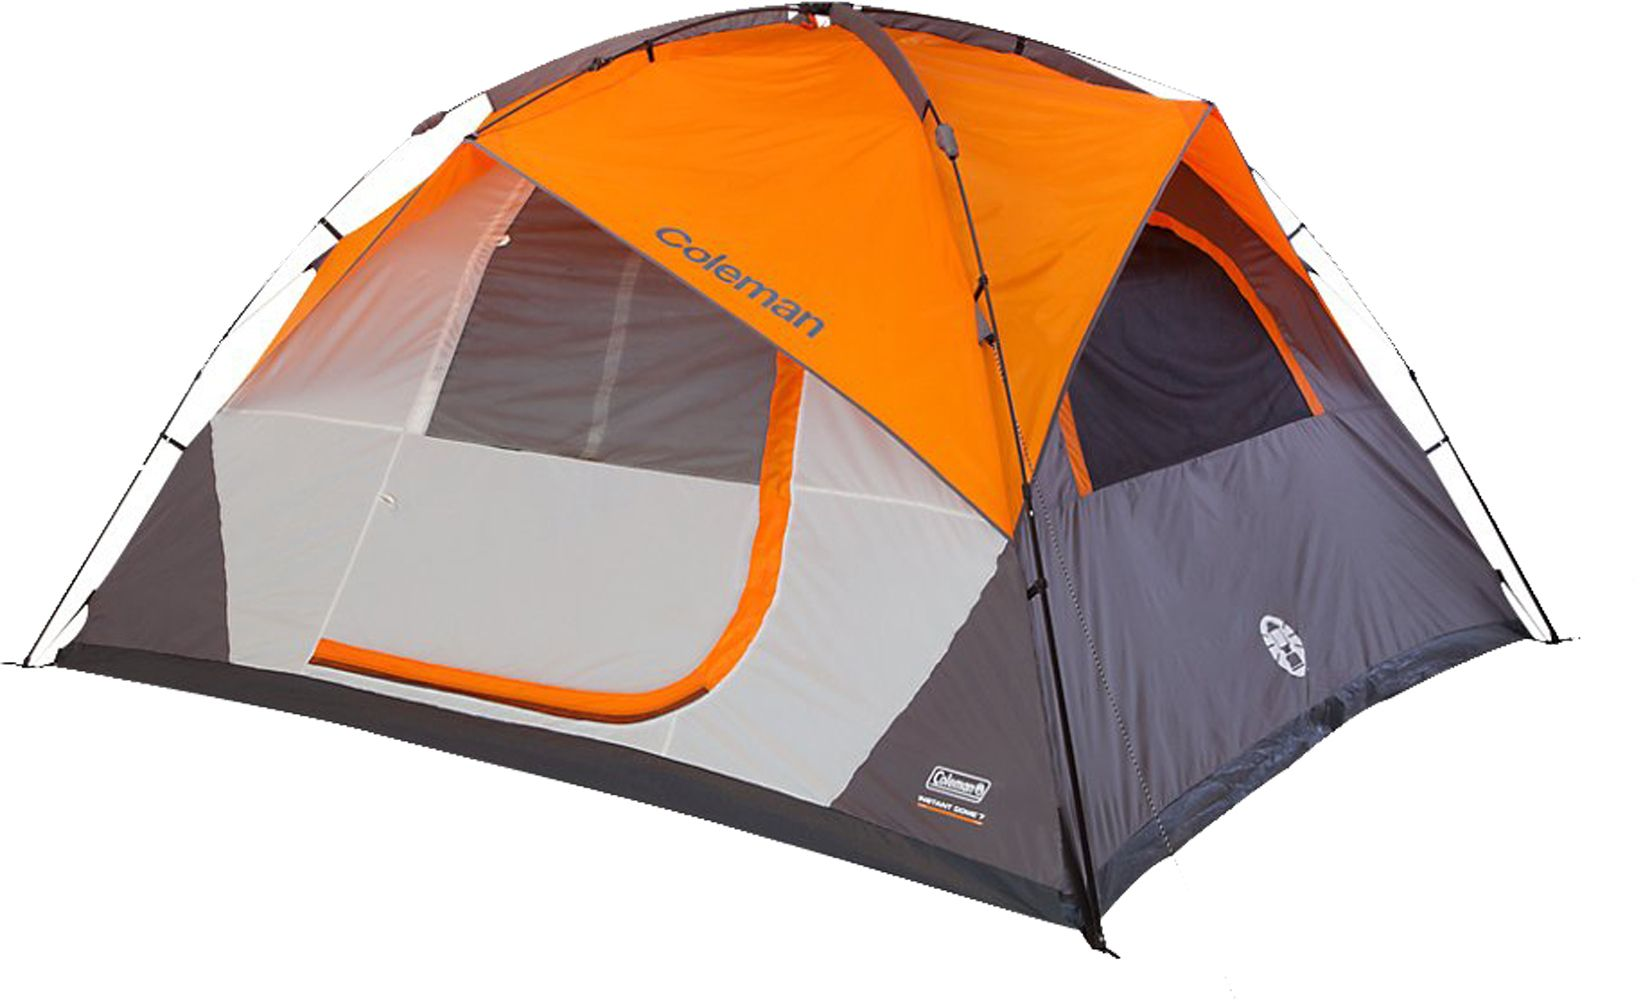 Product Image · Coleman Signature Instant Dome 7 Person Tent with Integrated Fly  sc 1 st  DICKu0027S Sporting Goods & 6-Person Tents | DICKu0027s Sporting Goods